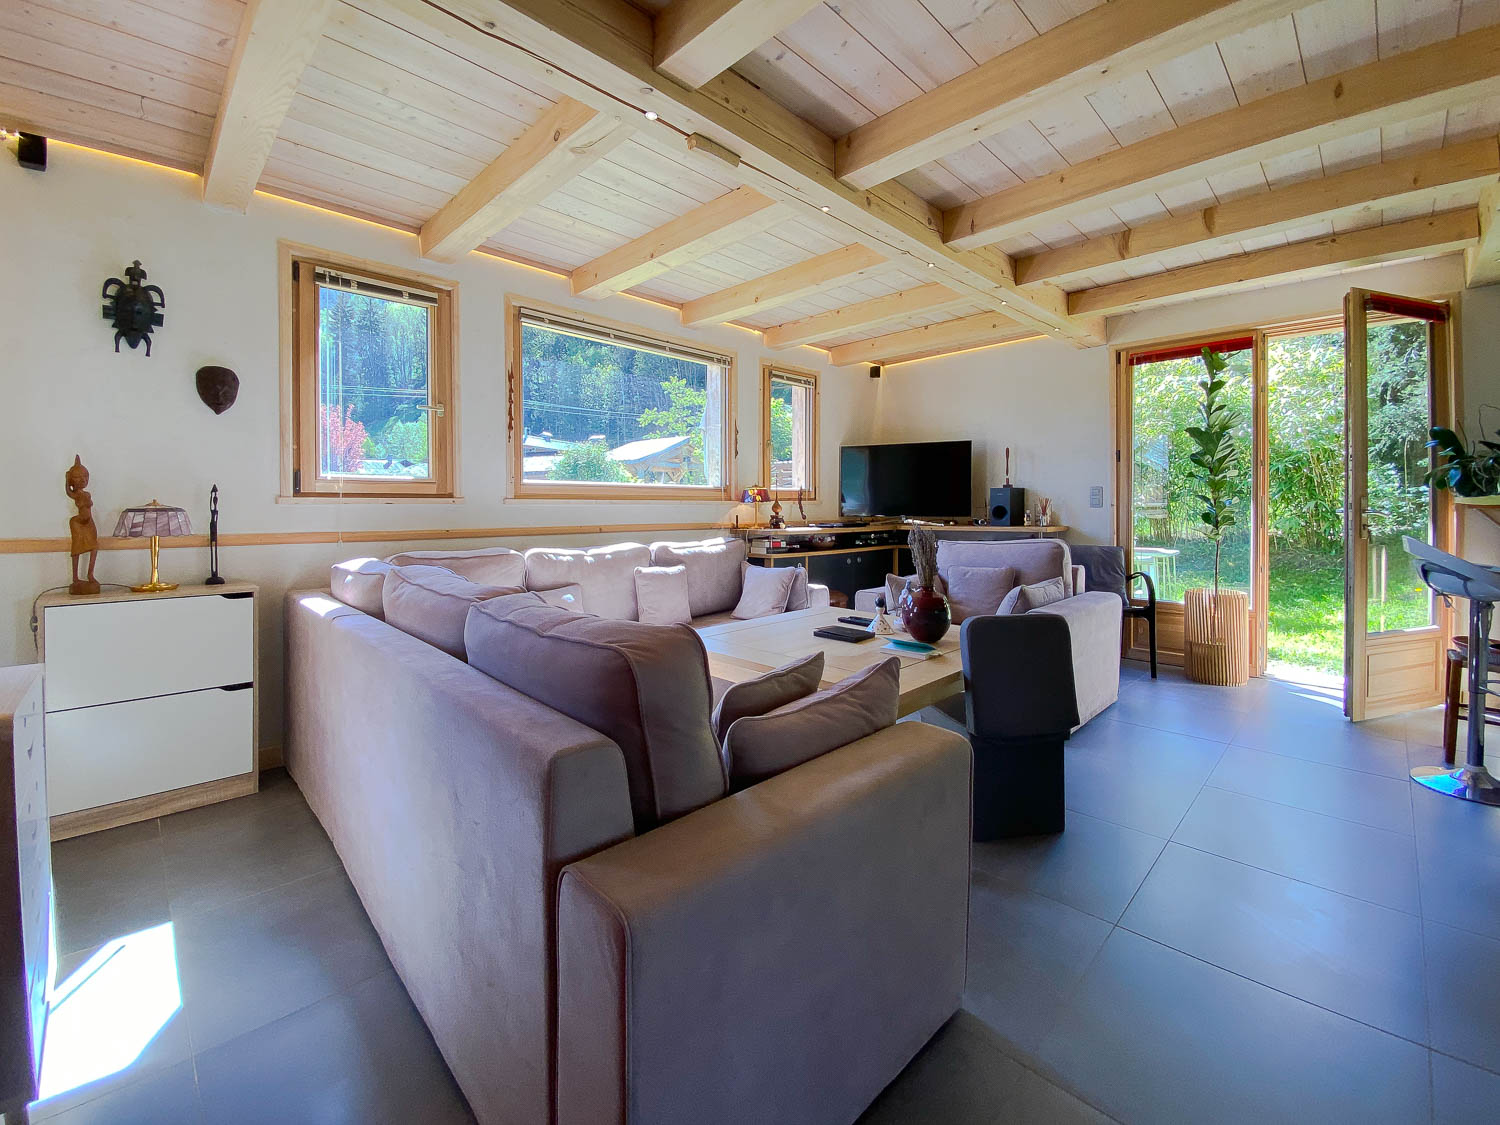 Chalet for sale Chamonix Les Bossons